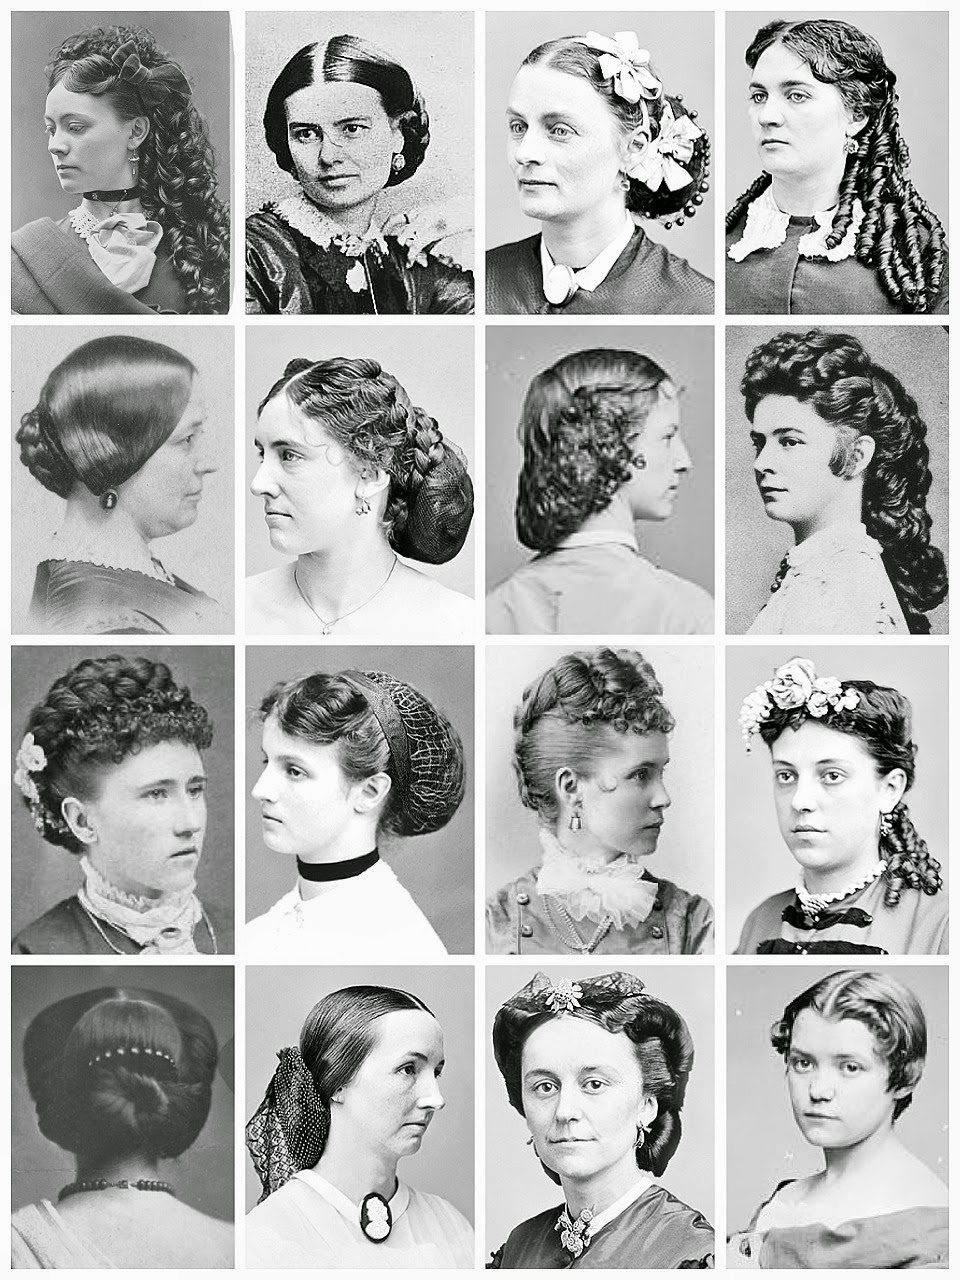 vintage black hairstyles : ... .com/post/48014868873/victorian-hairstyles-a-collection-of-victorian